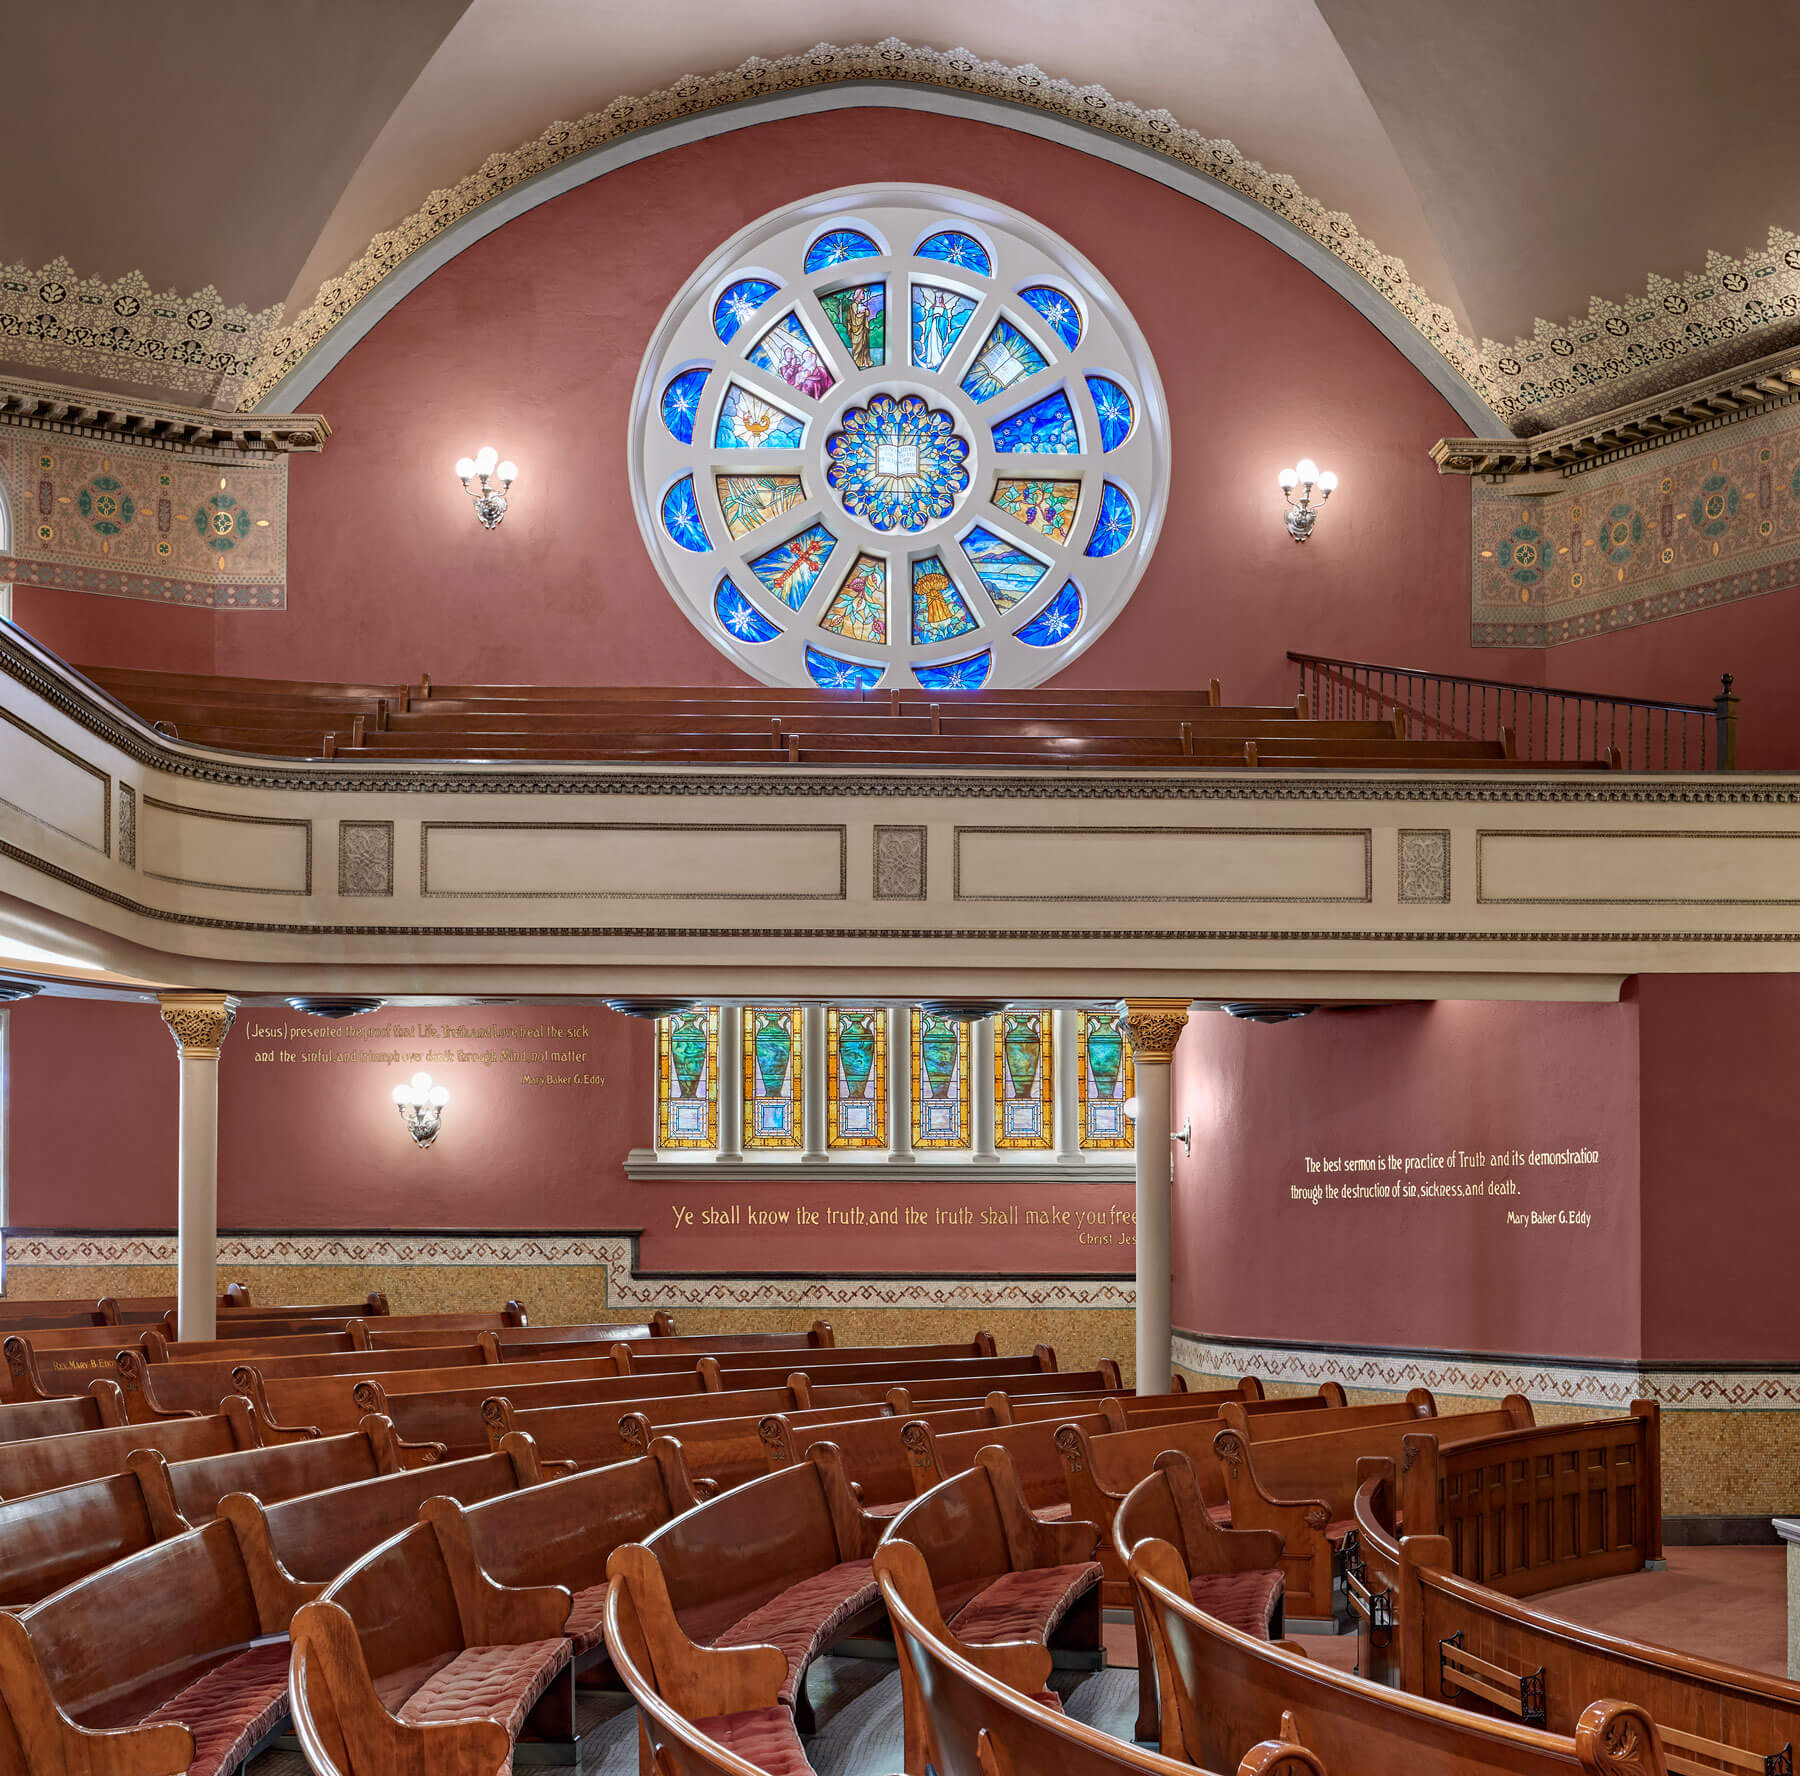 Curved pews  with a detailed rose window above the second floor balcony, on a pink background.